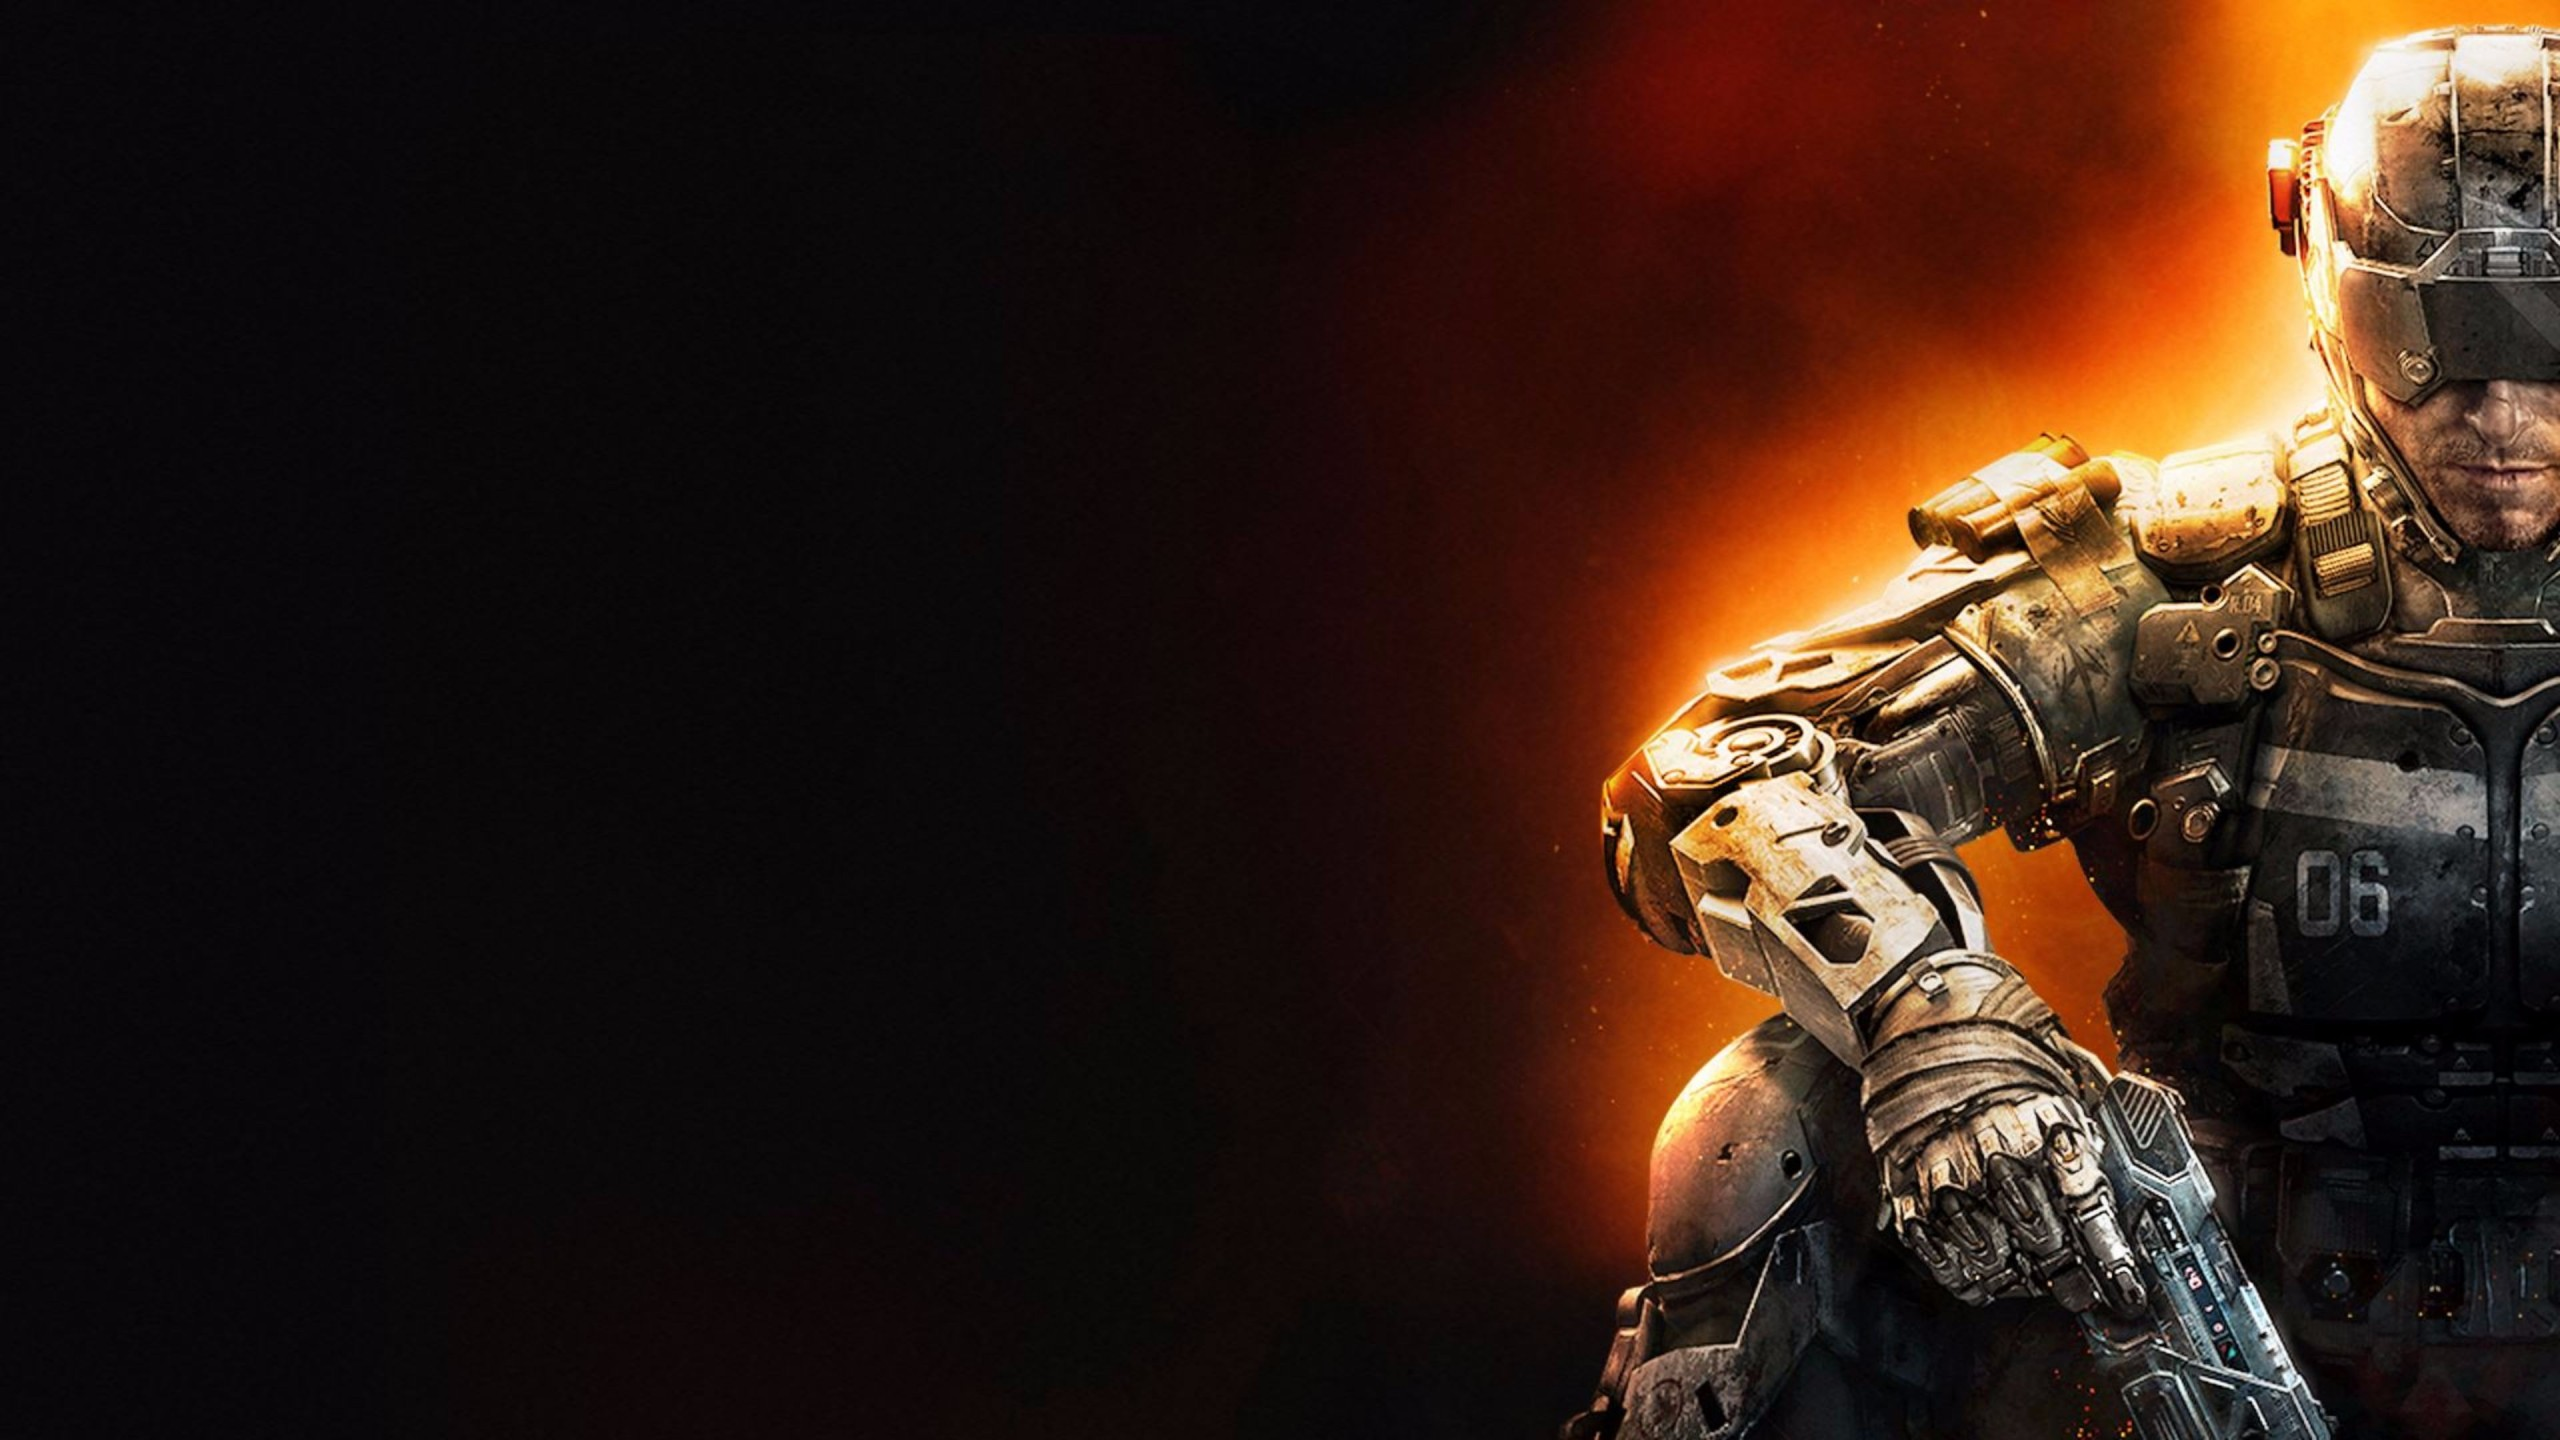 Download 2016 Call of Duty Black Ops 3 4K Wallpaper 2560x1440